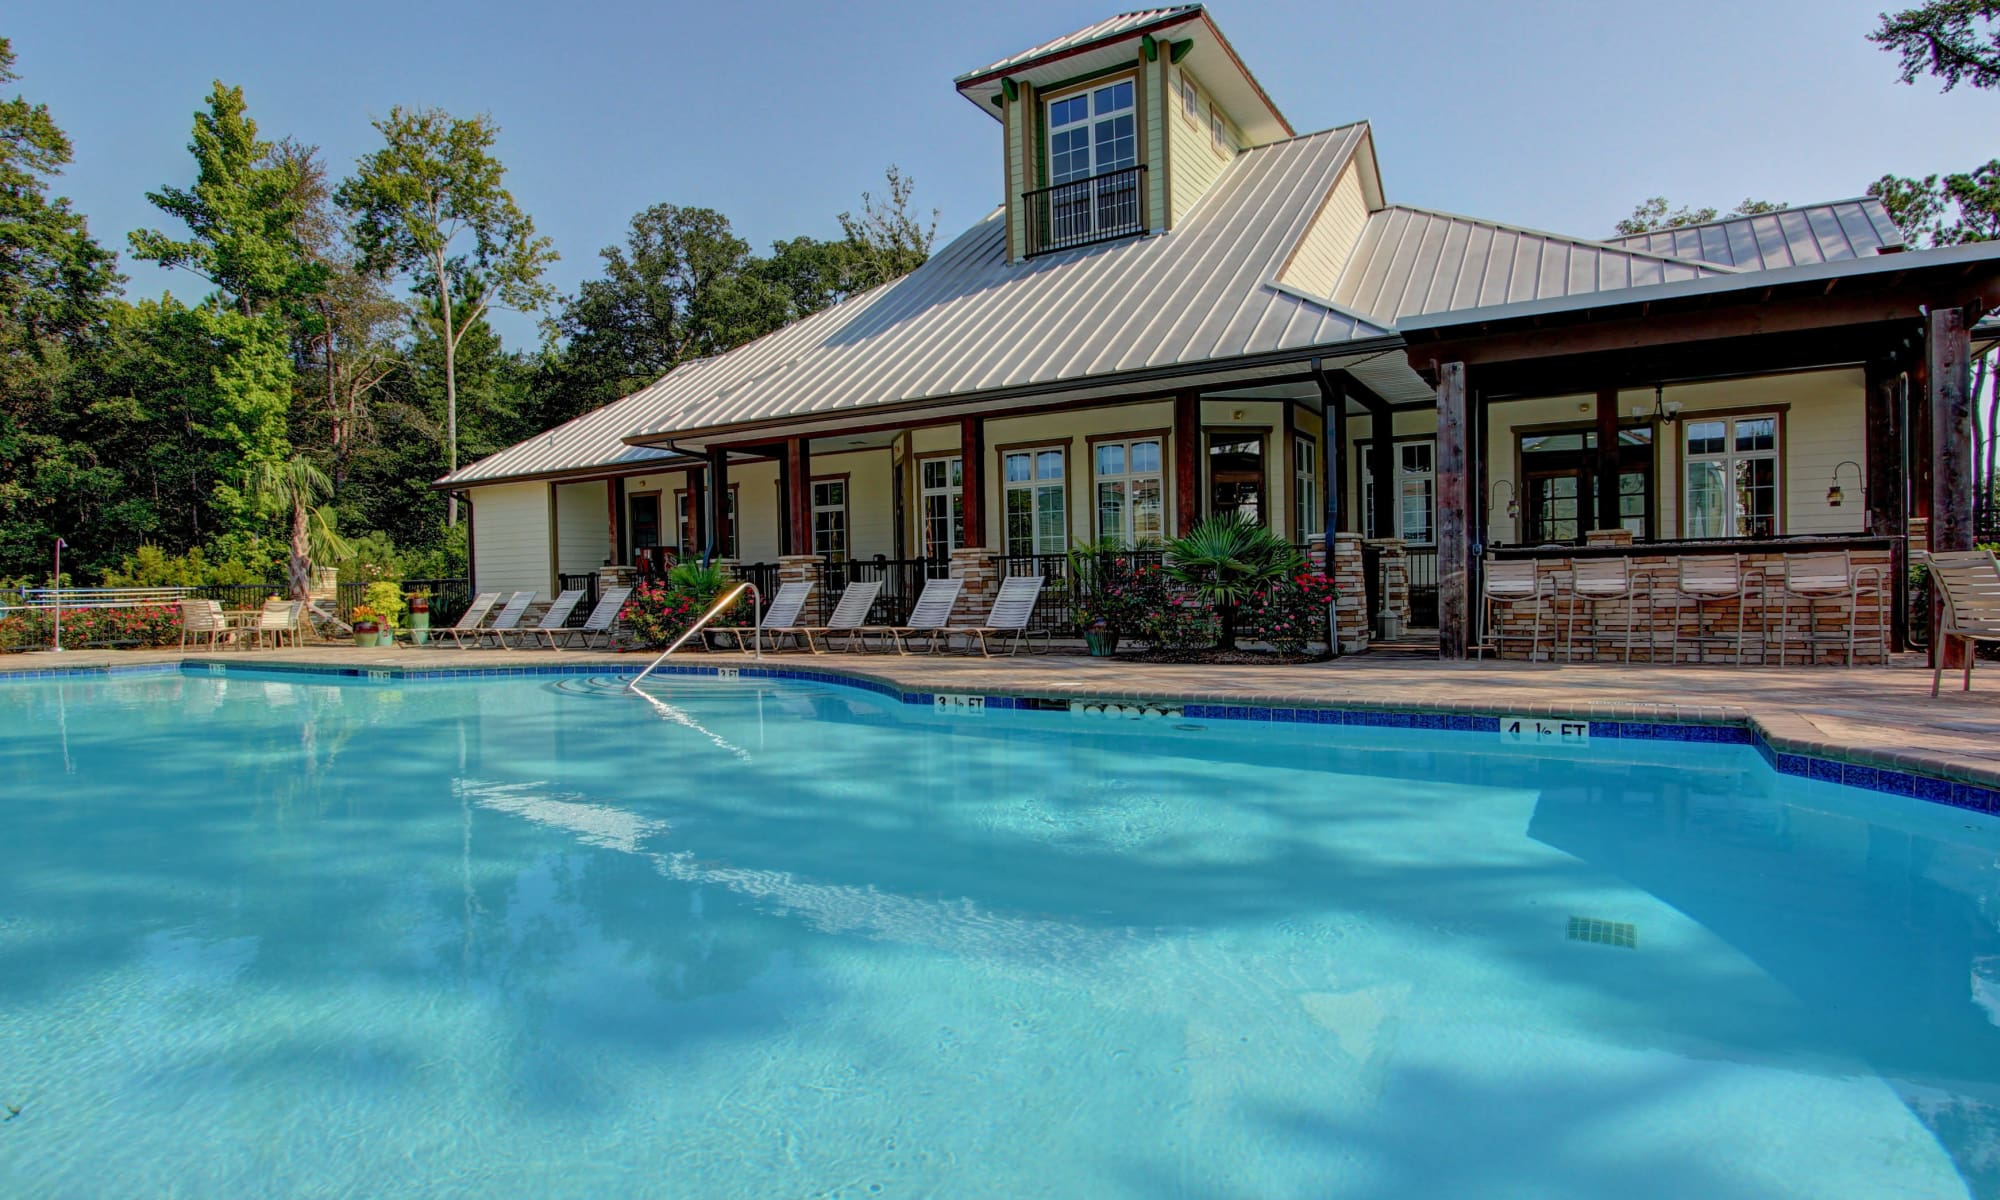 Beautiful swimming pool at Panther Effingham Parc Apartments in Rincon, GA.